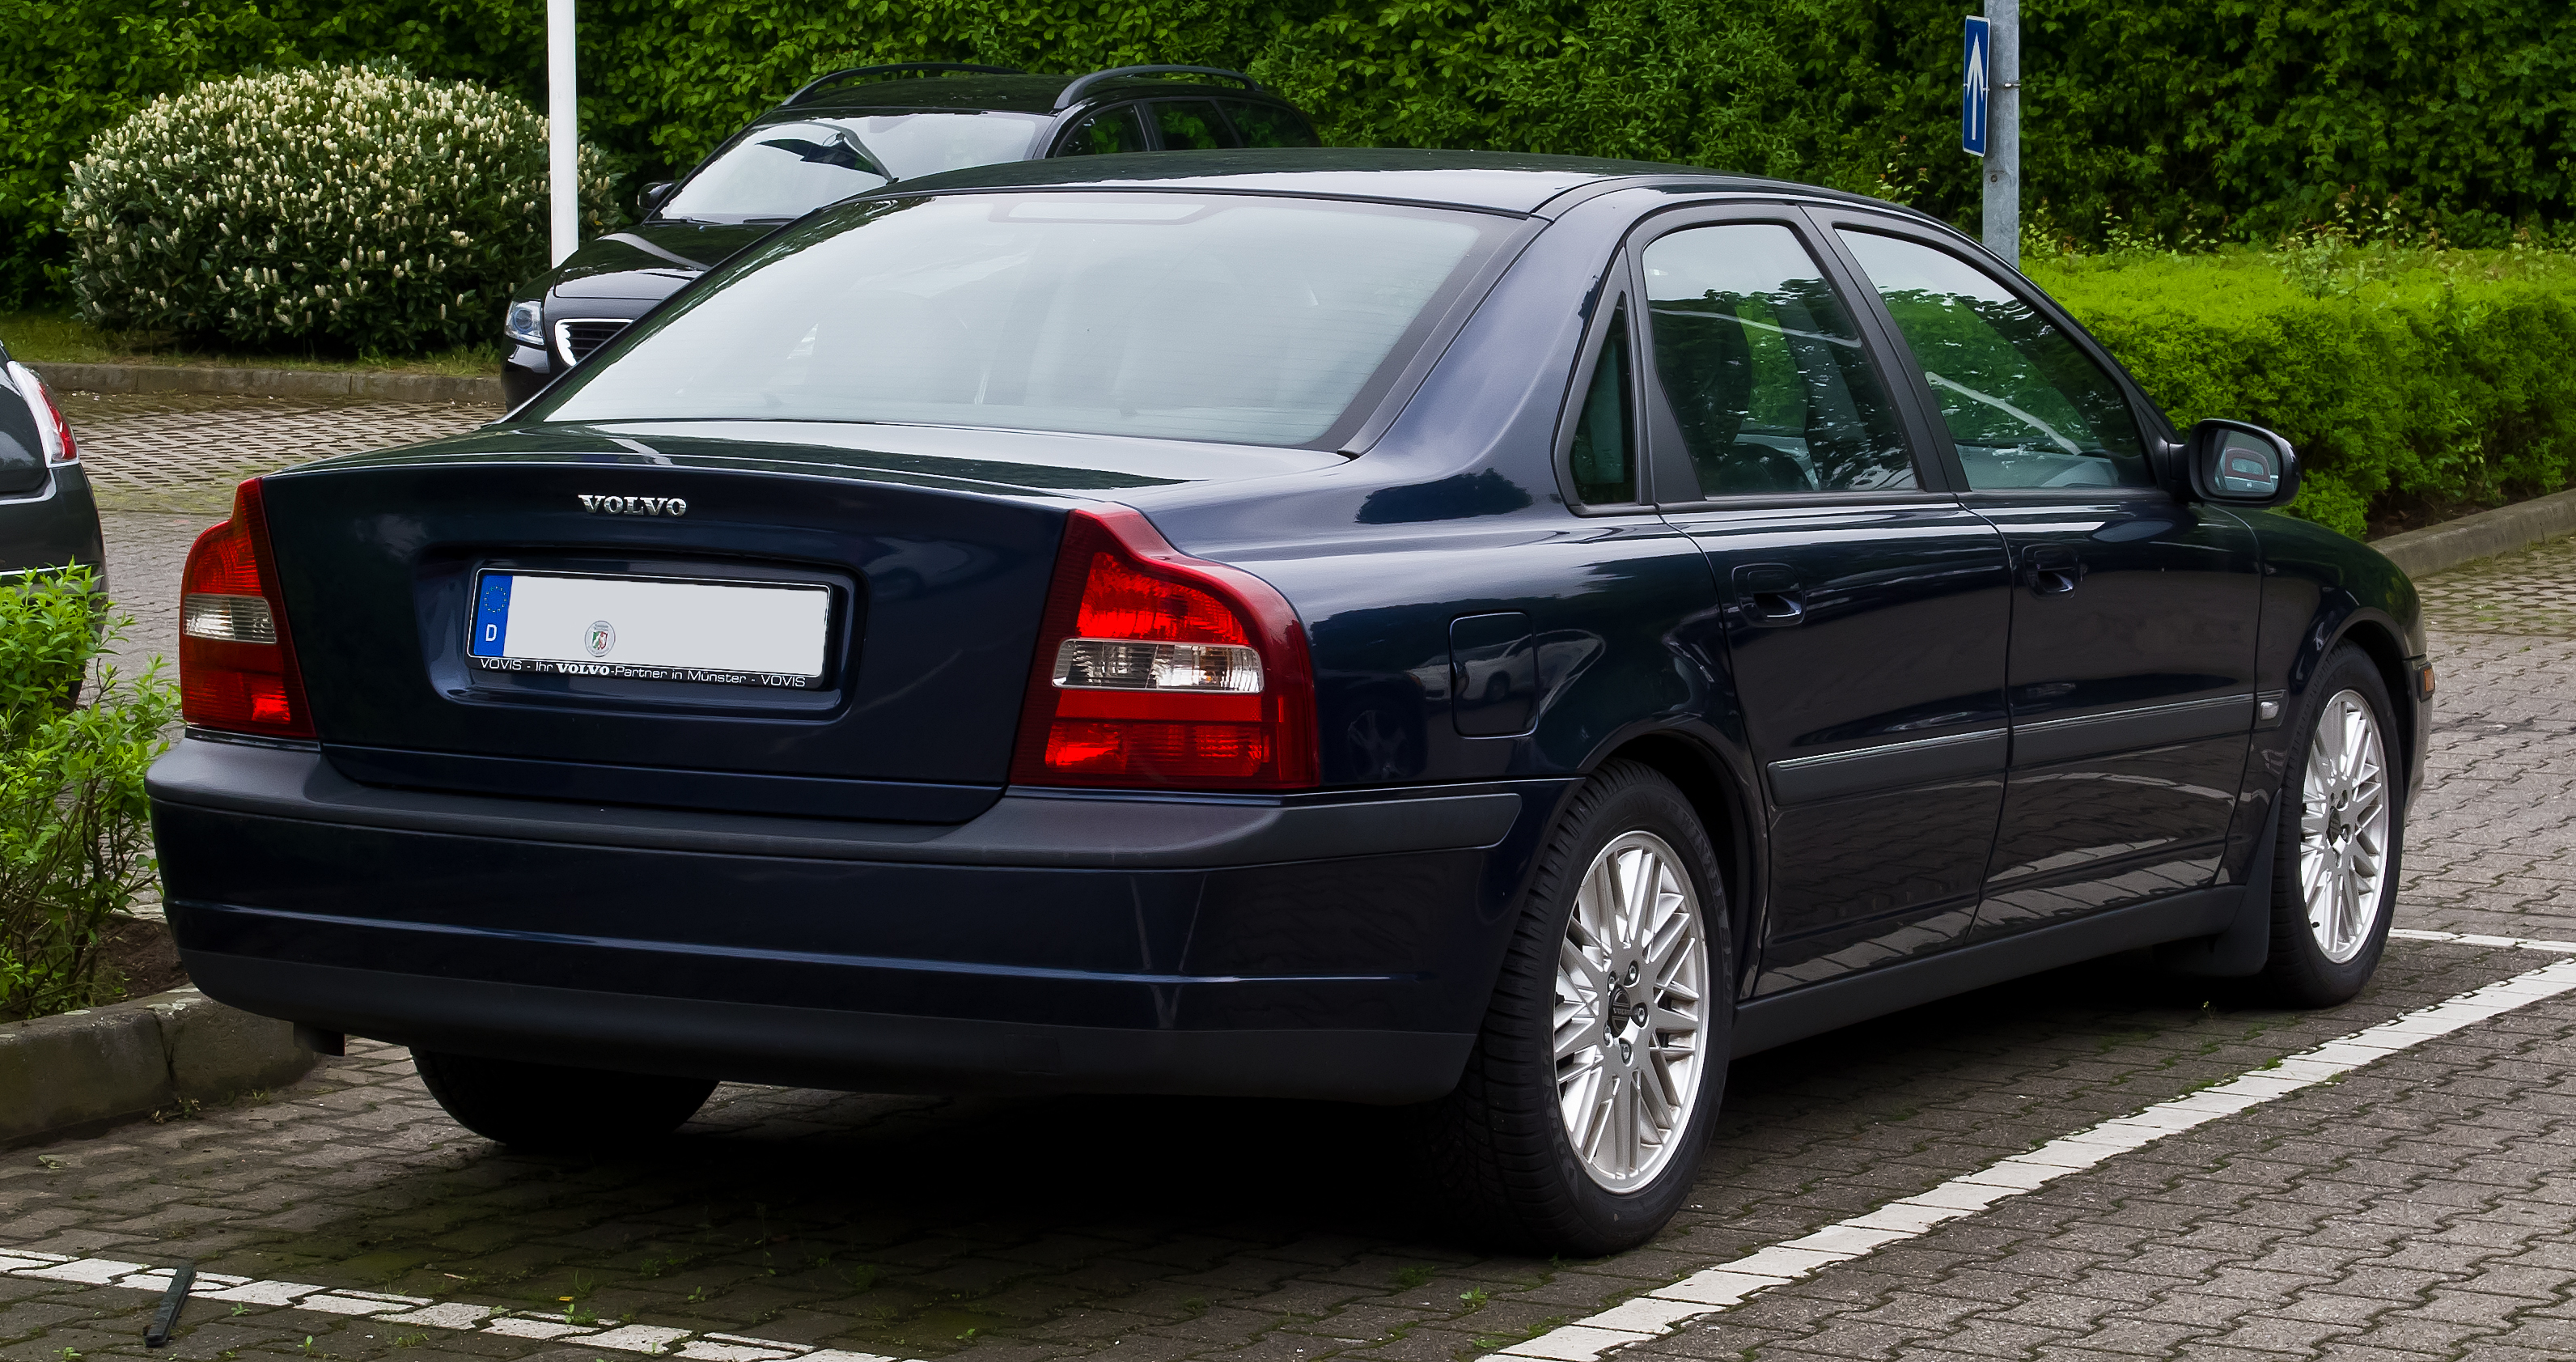 file volvo s80 i heckansicht 18 mai 2013 m wikimedia commons. Black Bedroom Furniture Sets. Home Design Ideas